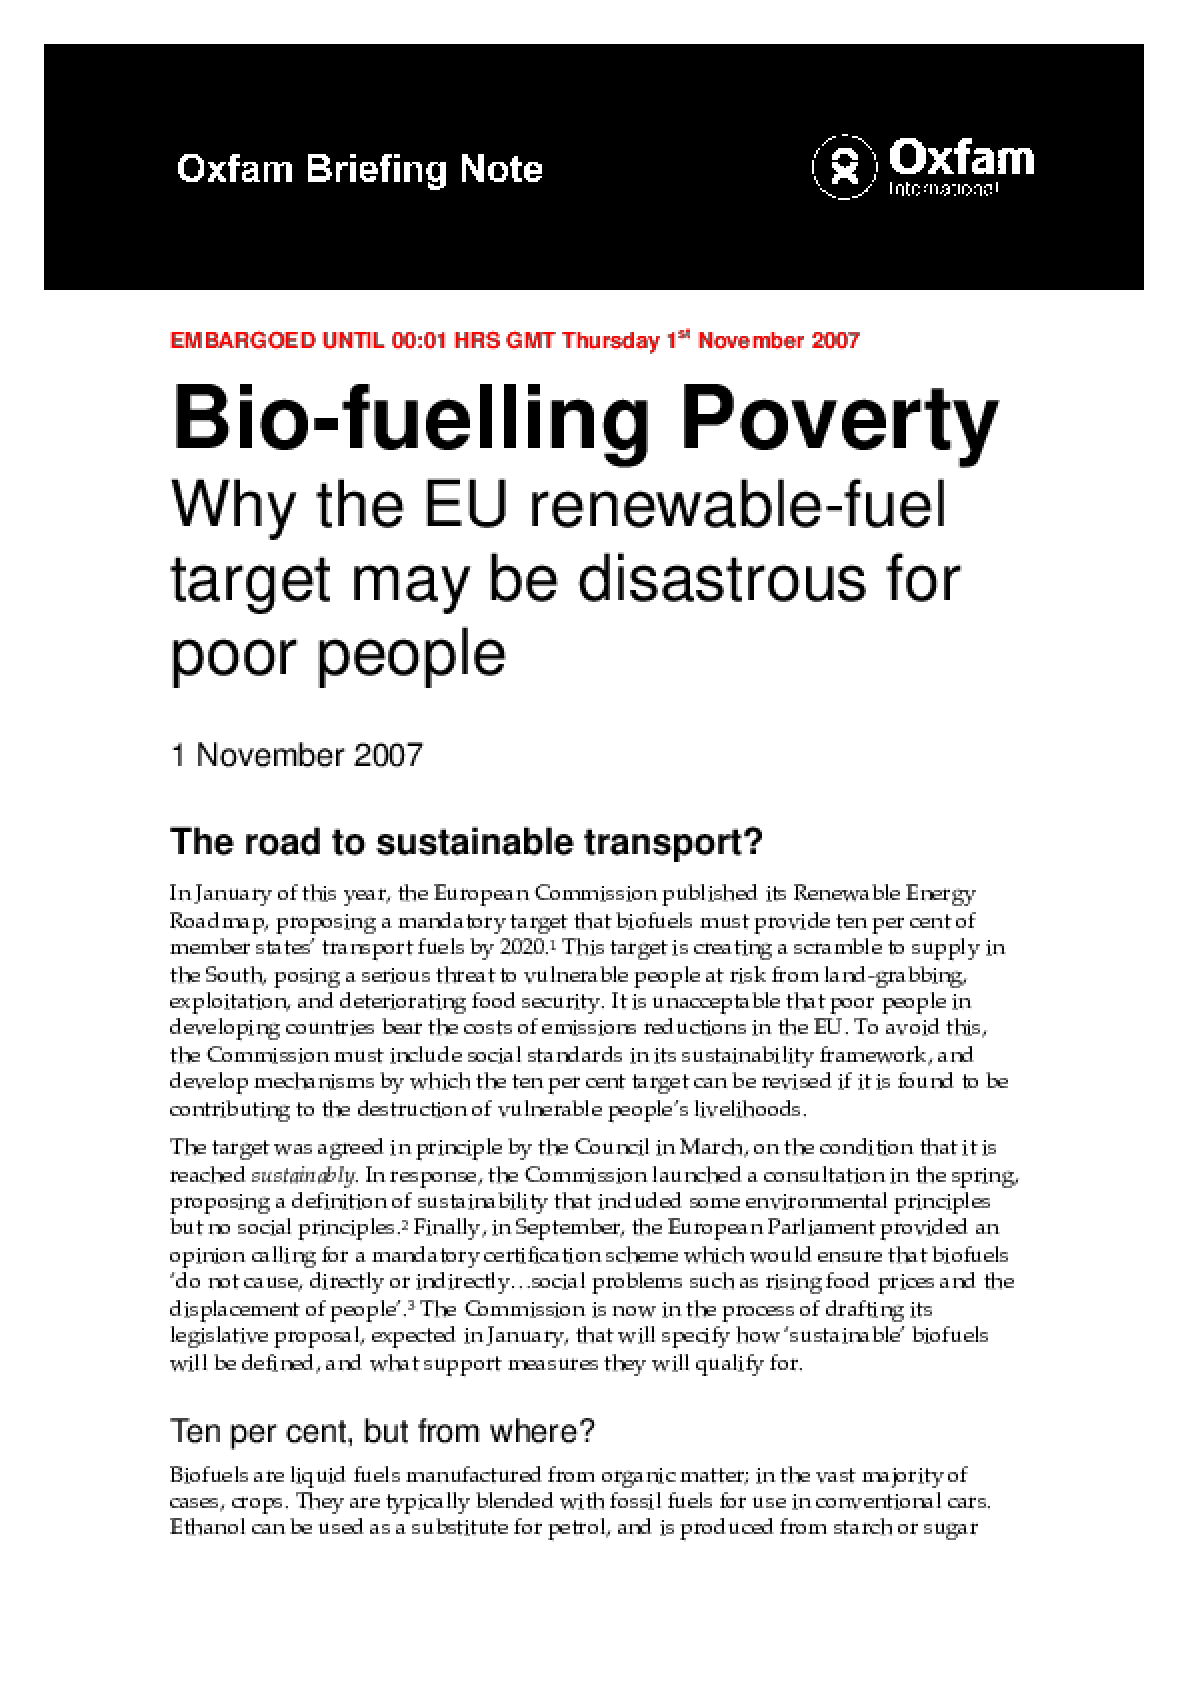 Biofuelling Poverty: Why the EU renewable fuel target may be disastrous for poor people